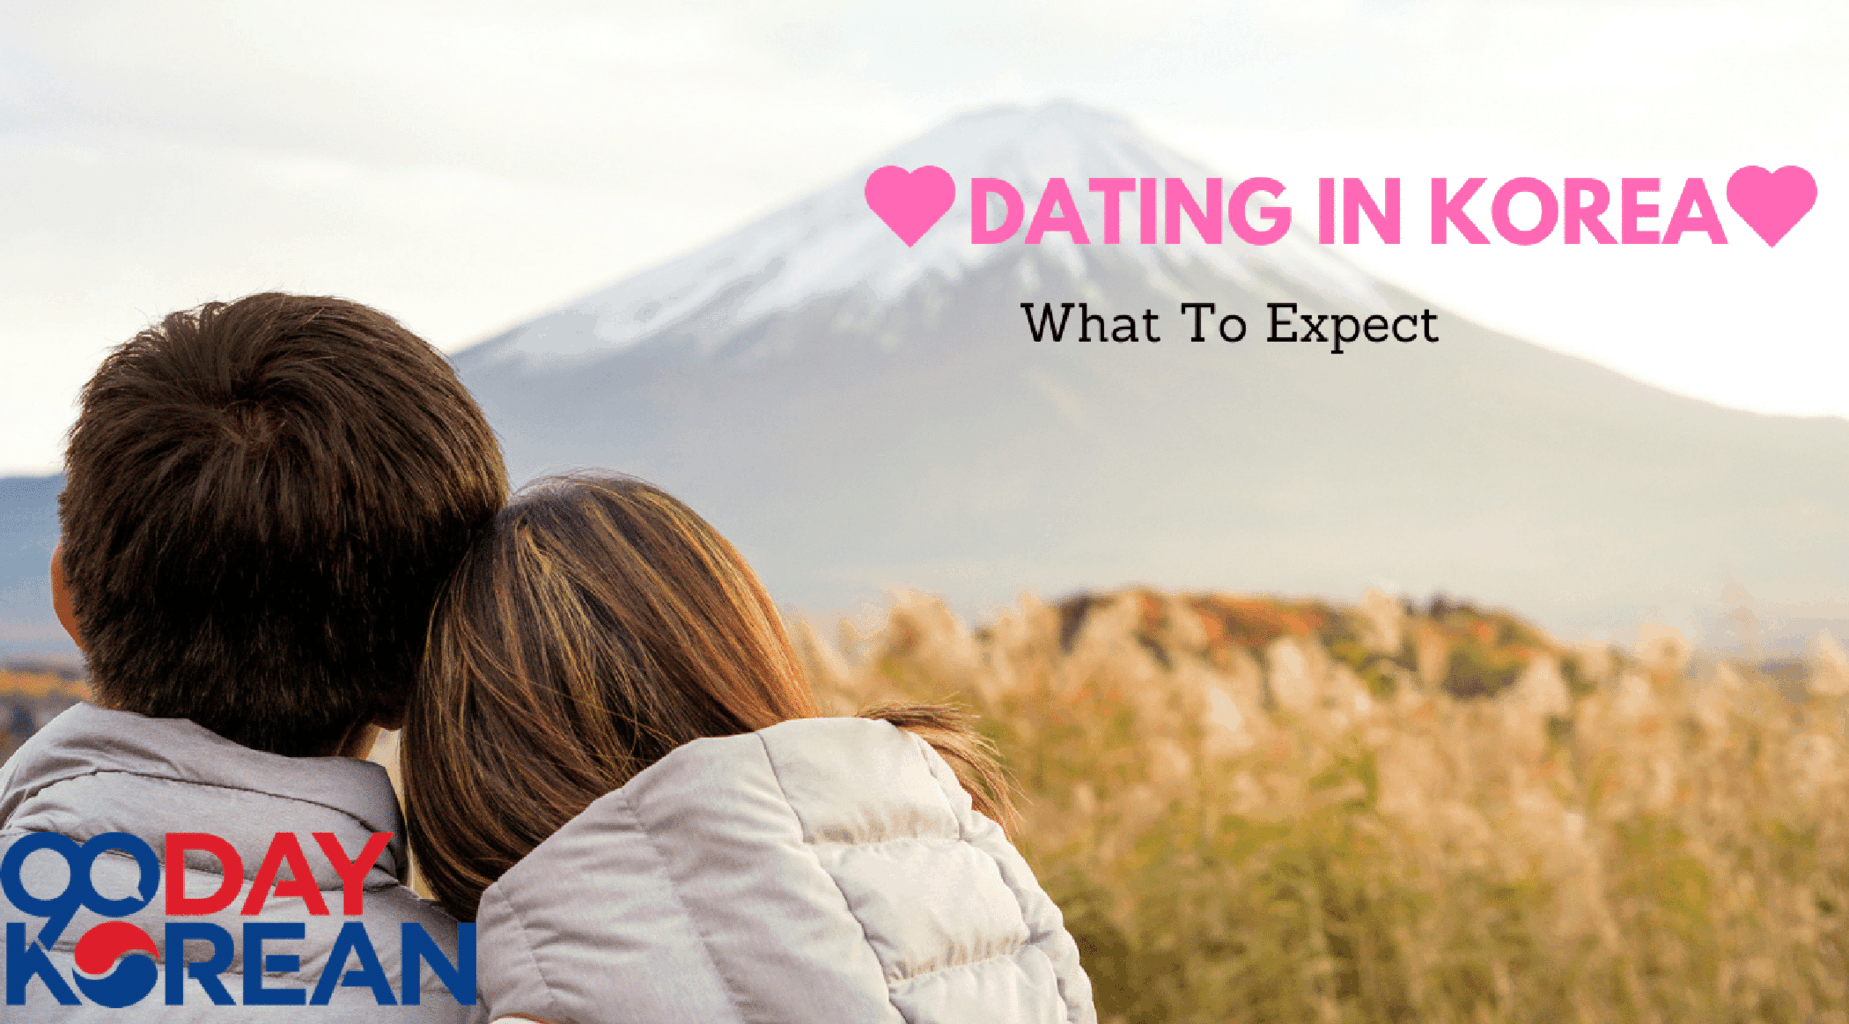 Dating In Korea: What To Expect